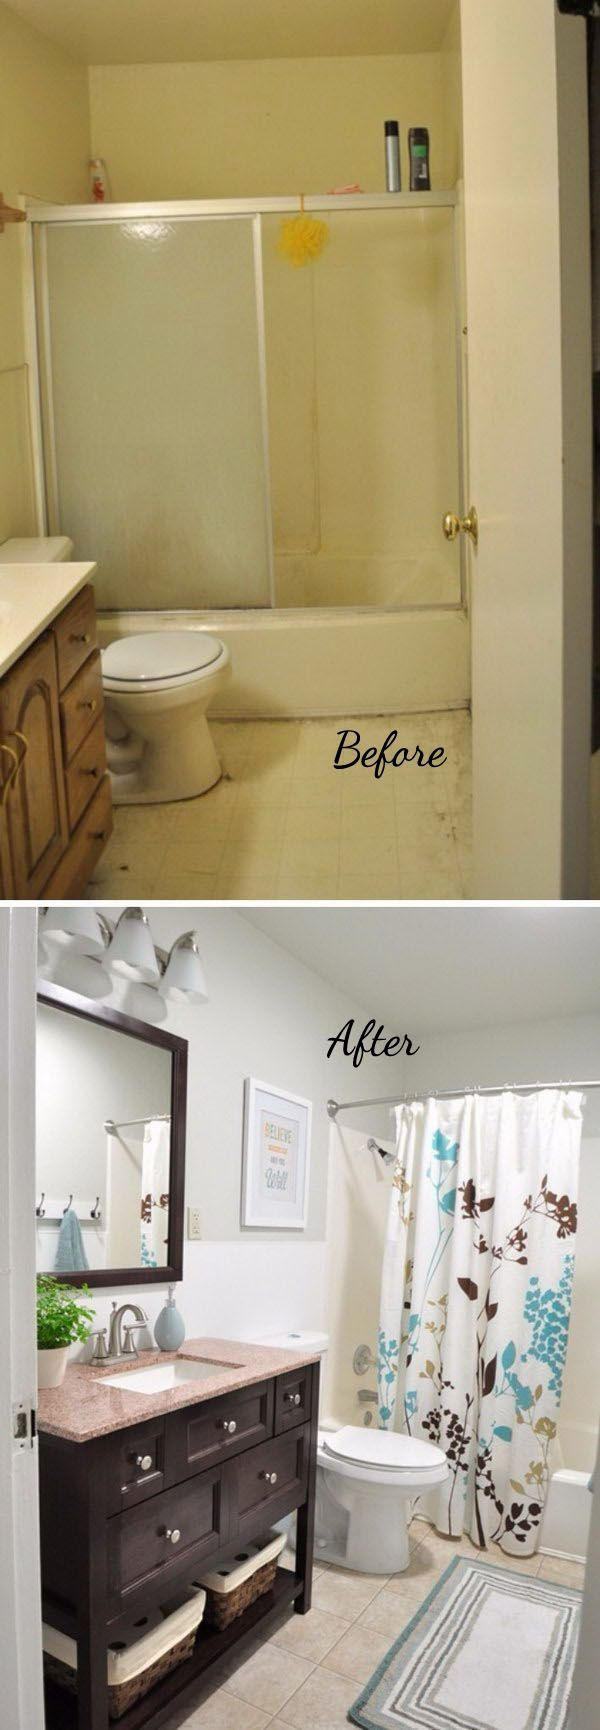 before and after 20 awesome bathroom makeovers future ideas for home pinterest. Black Bedroom Furniture Sets. Home Design Ideas